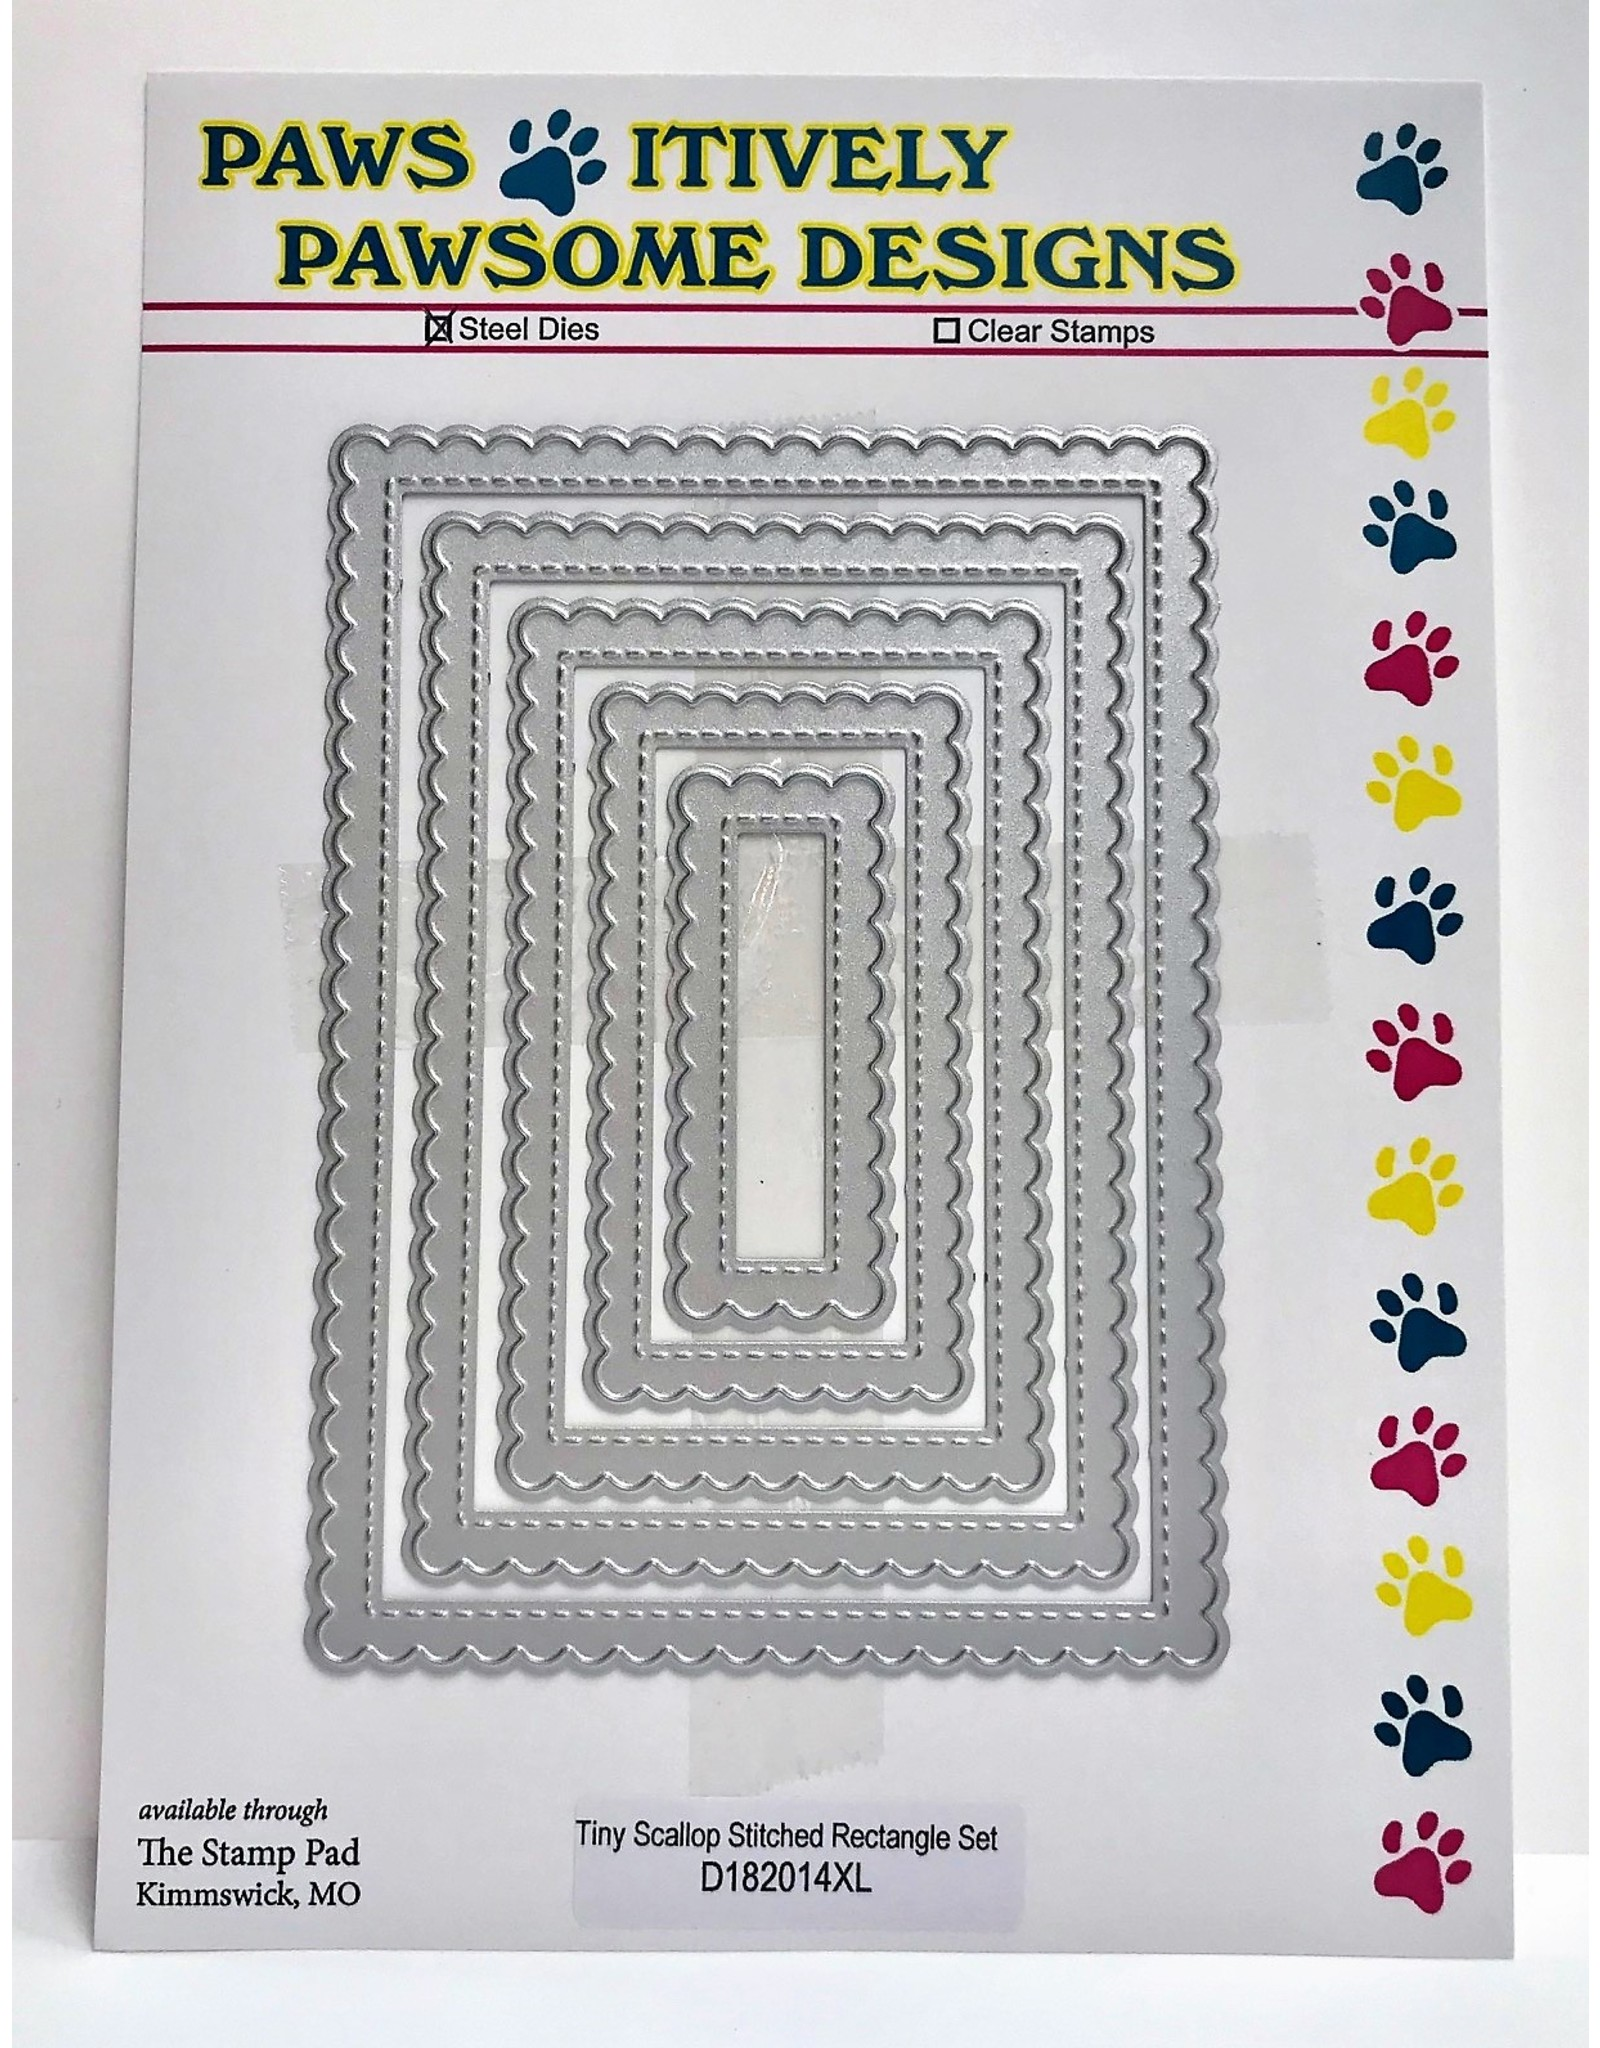 Paws-Itively Pawsome Designs Tiny Scallop Stitched Rectangle Set - Die